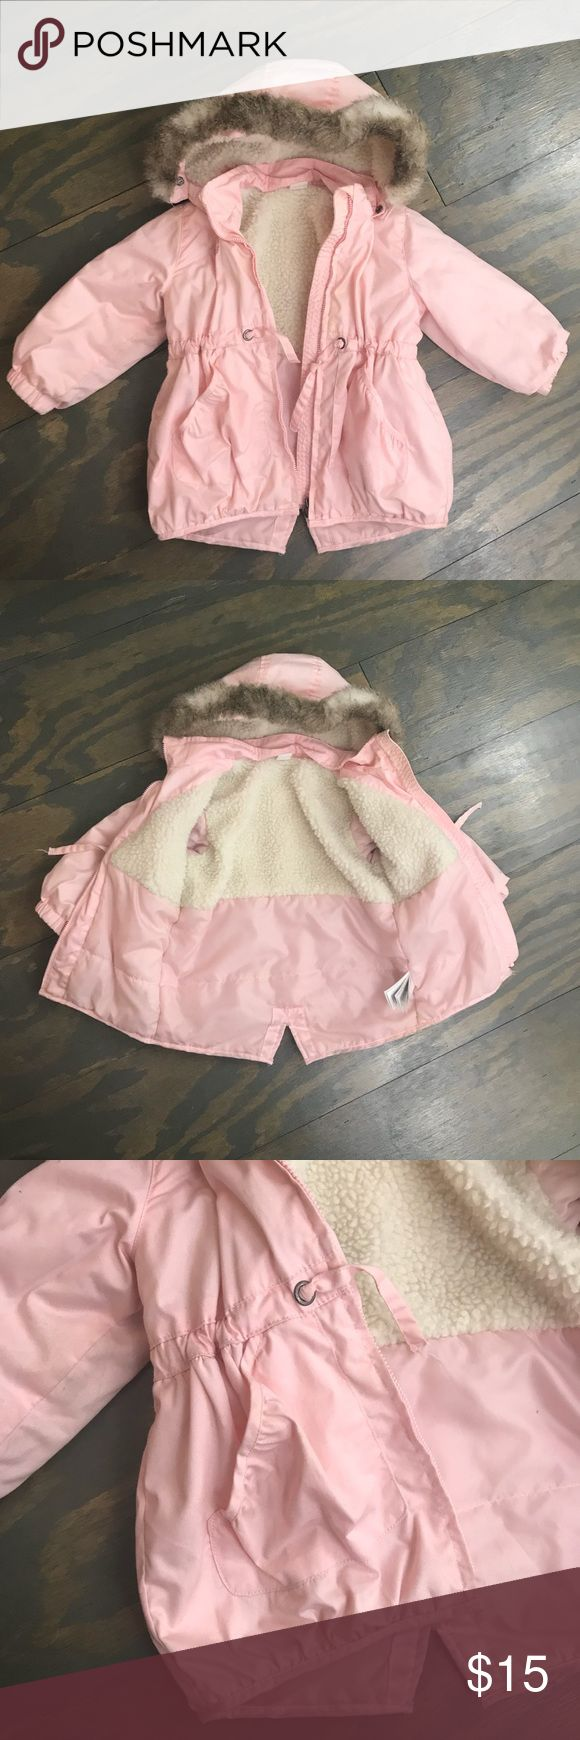 Toddler Girls Pink Parka w/ Fur Hood. Size 2T Toddler Girls Pink Parka w/ Fur Hood. Size 2T. Good used condition. Dirawstring waist. Detachable hood and Fur. Machine Washable. Back sleeve does have some minor stain. Don't think it will come out in wash. Very unnoticeable. H&M Jackets & Coats